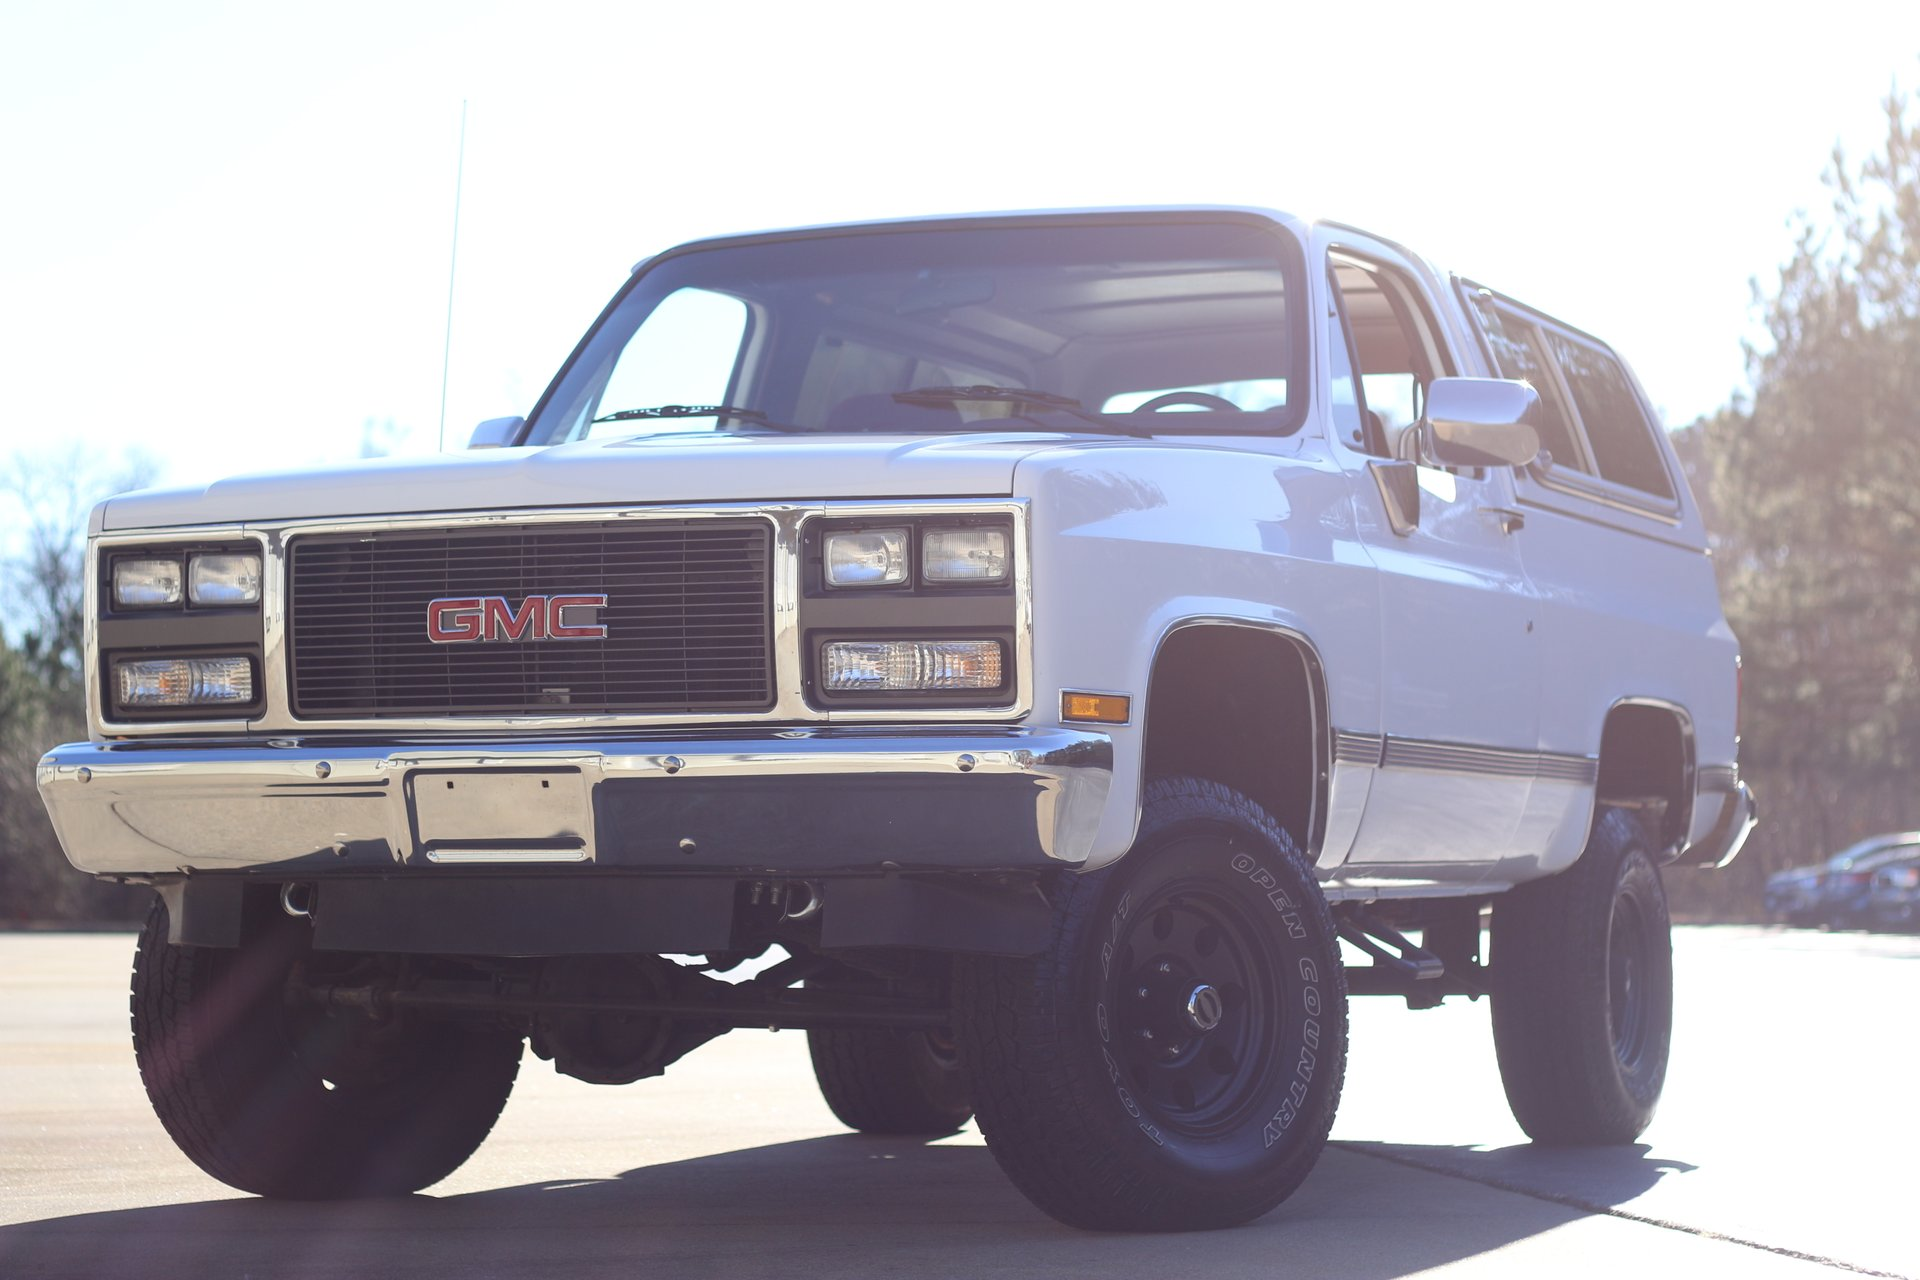 1989 GMC Jimmy | Streetside Classics - The Nation's Trusted